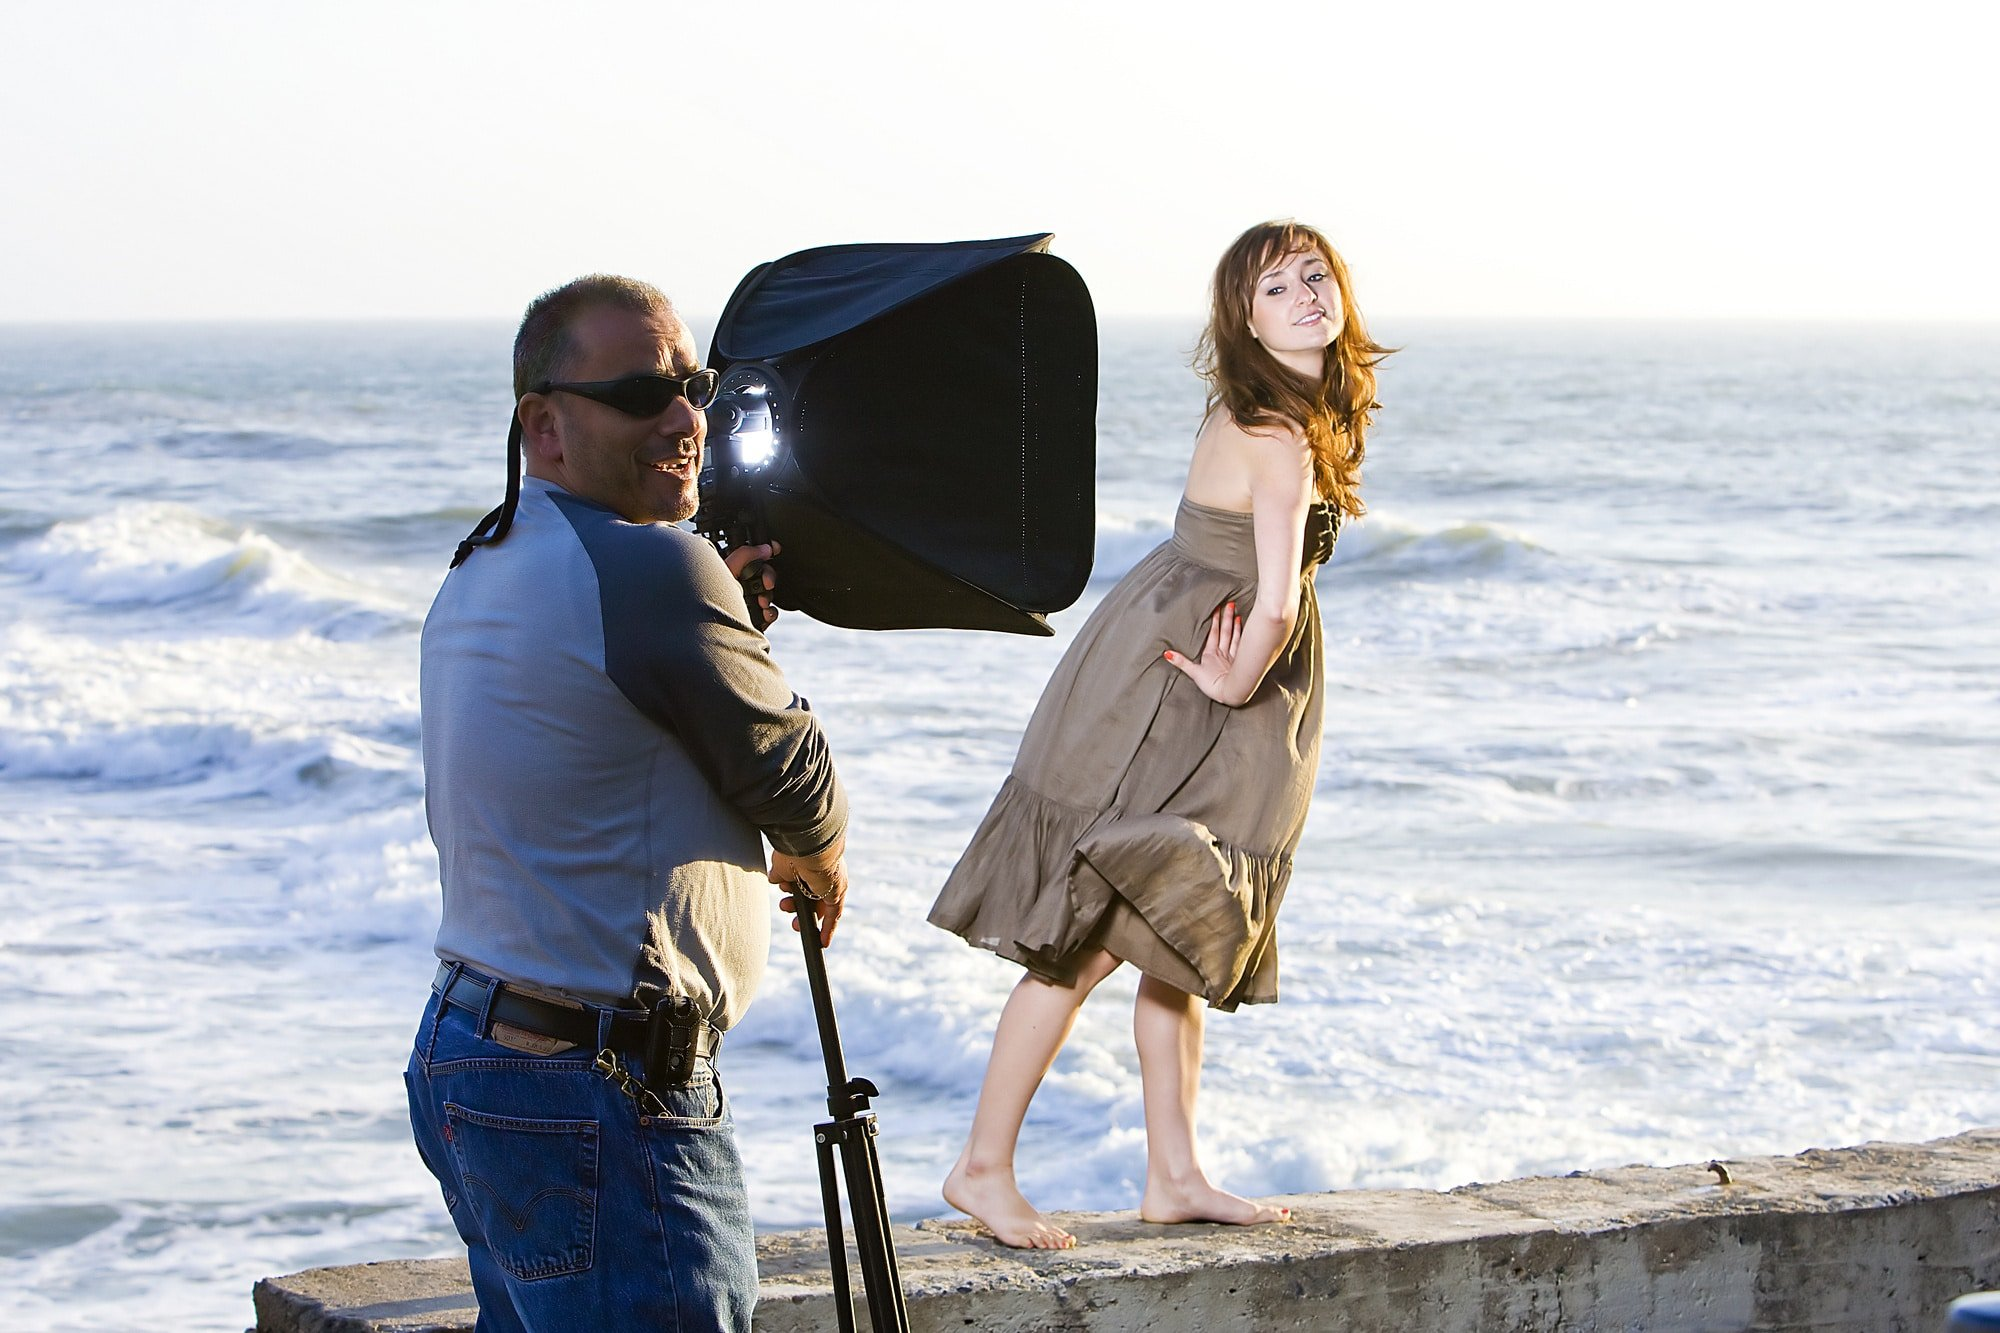 What Are the Differences Between On-Location and Studio Photo Shoots?